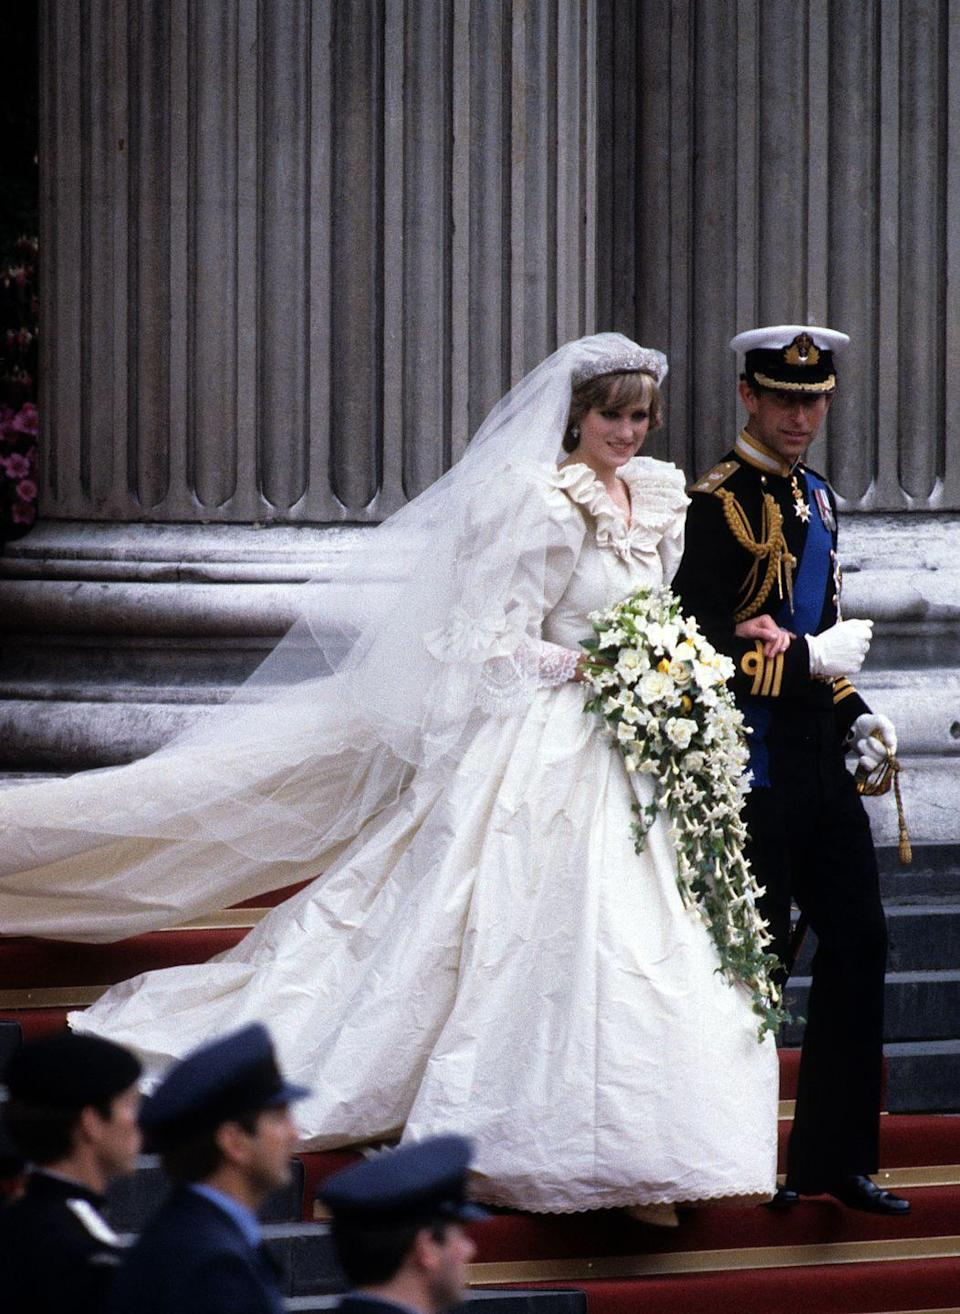 "<p><a href=""https://www.townandcountrymag.com/society/tradition/a12095662/princess-diana-wedding-video/"" rel=""nofollow noopener"" target=""_blank"" data-ylk=""slk:Princess Diana and Prince Charles of Wales were married"" class=""link rapid-noclick-resp"">Princess Diana and Prince Charles of Wales were married</a> on July 29, 1981 at St. Paul's Cathedral in London. Deemed the <span class=""redactor-unlink"">""most closely guarded secret in fashion history,"" her wedding dress</span> was created by David and Elizabeth Emanuel. The elaborately embroidered gown was adorned with 10,000 pearls and had a 25-foot-long train.</p>"